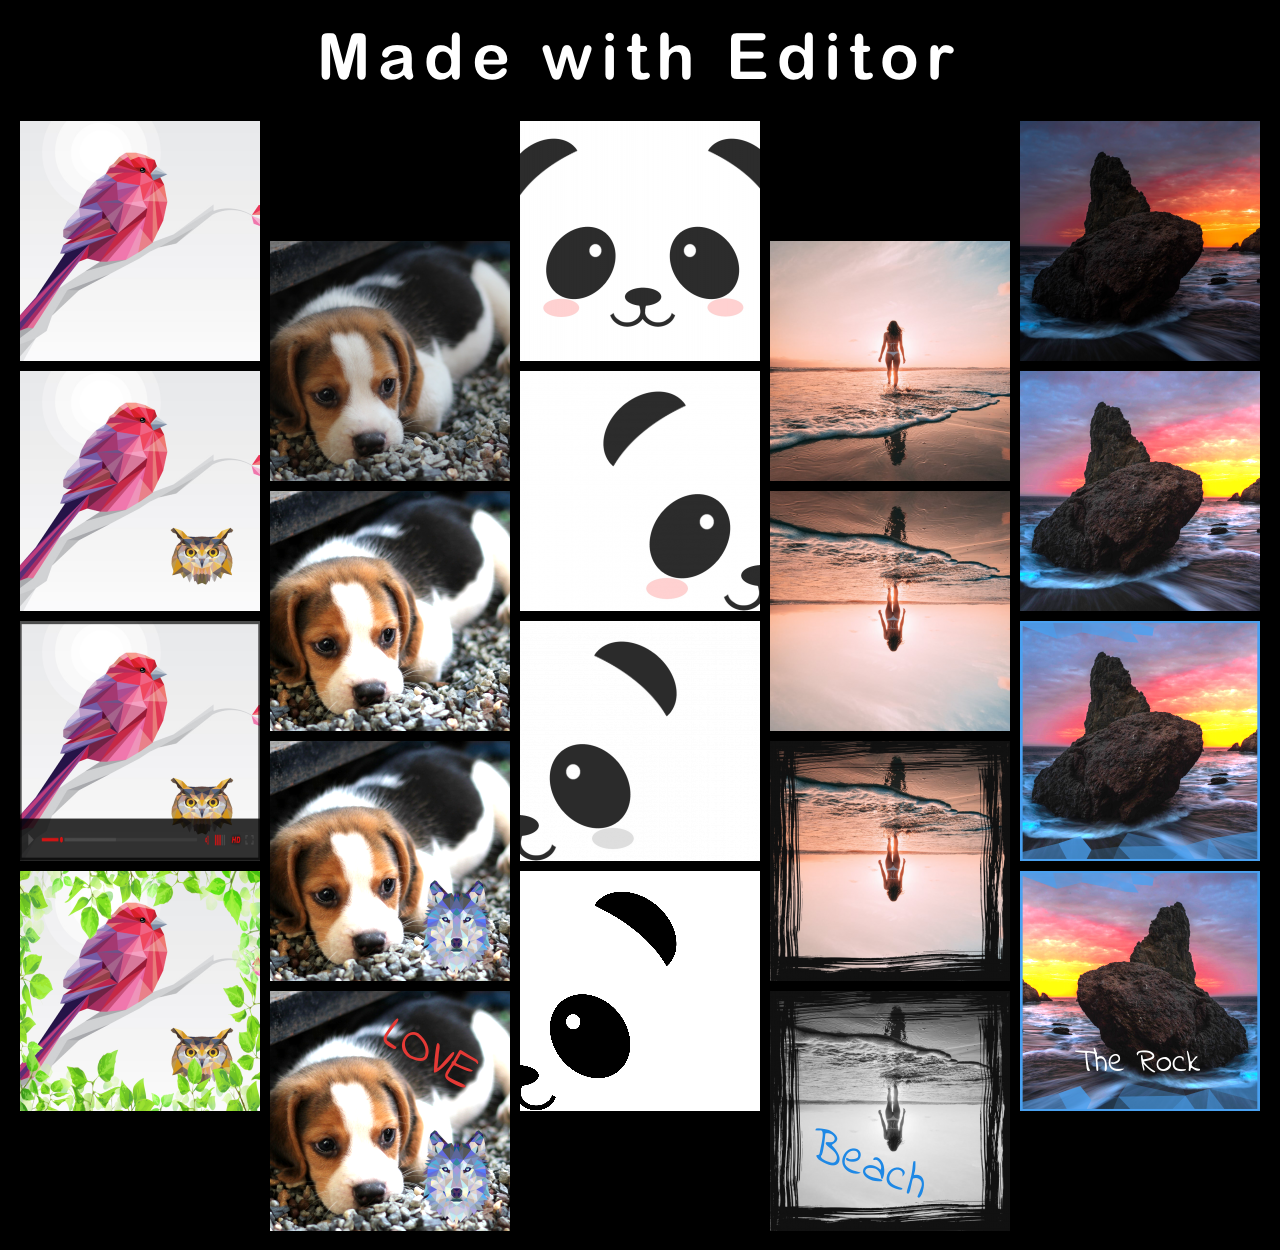 Weck - Image Handler Class with Editor